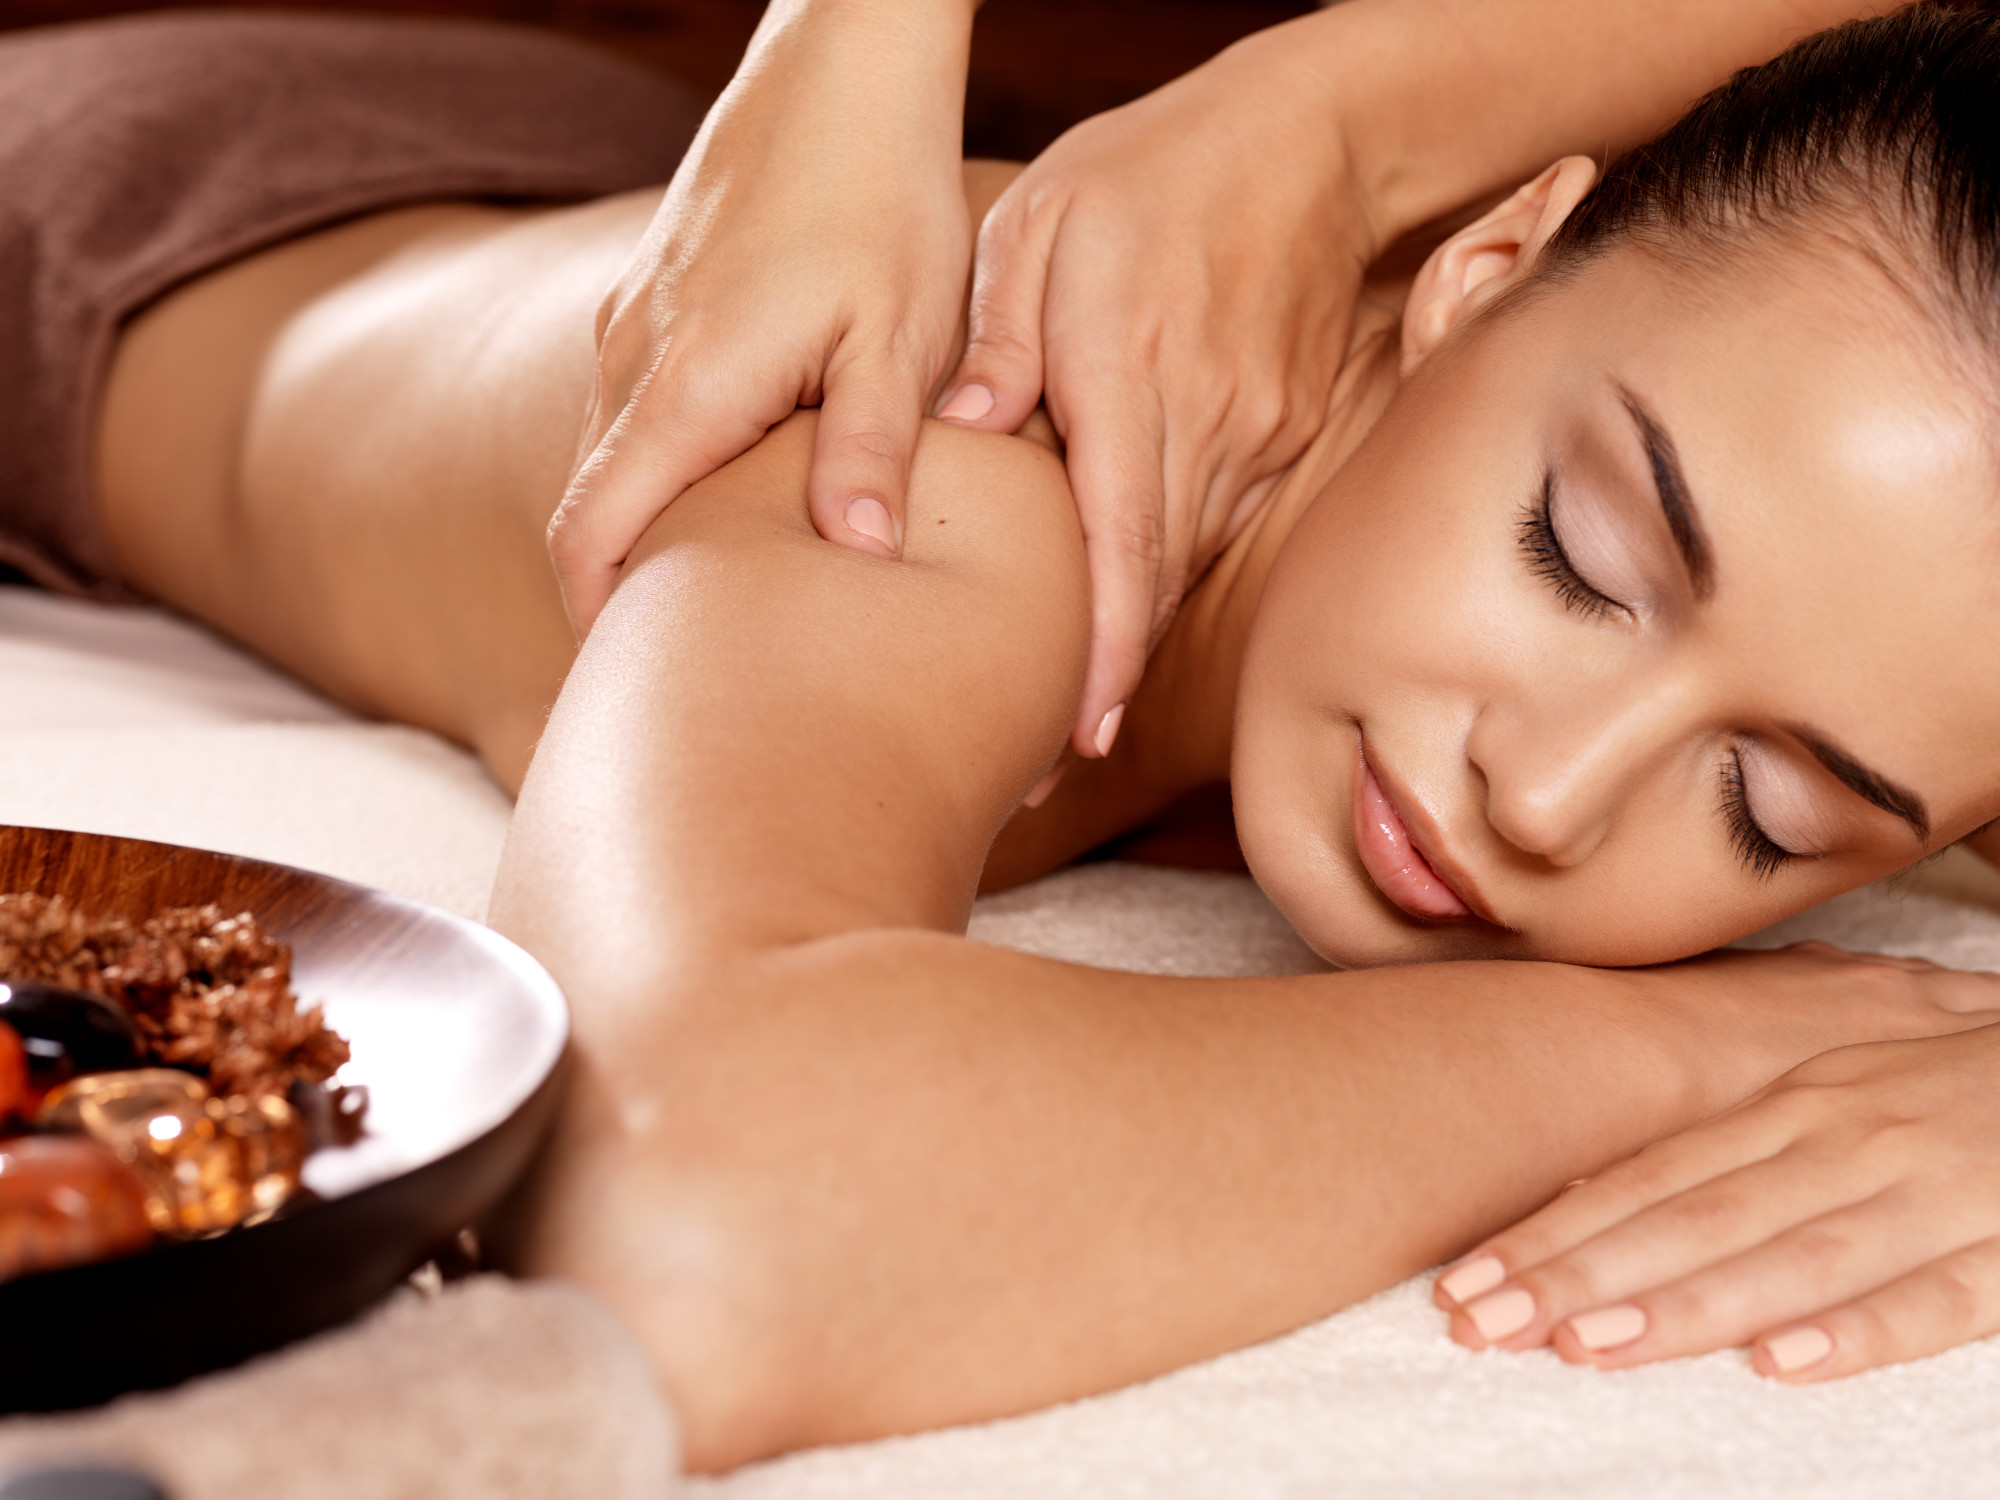 What to Expect for Your First Time Getting a Massage